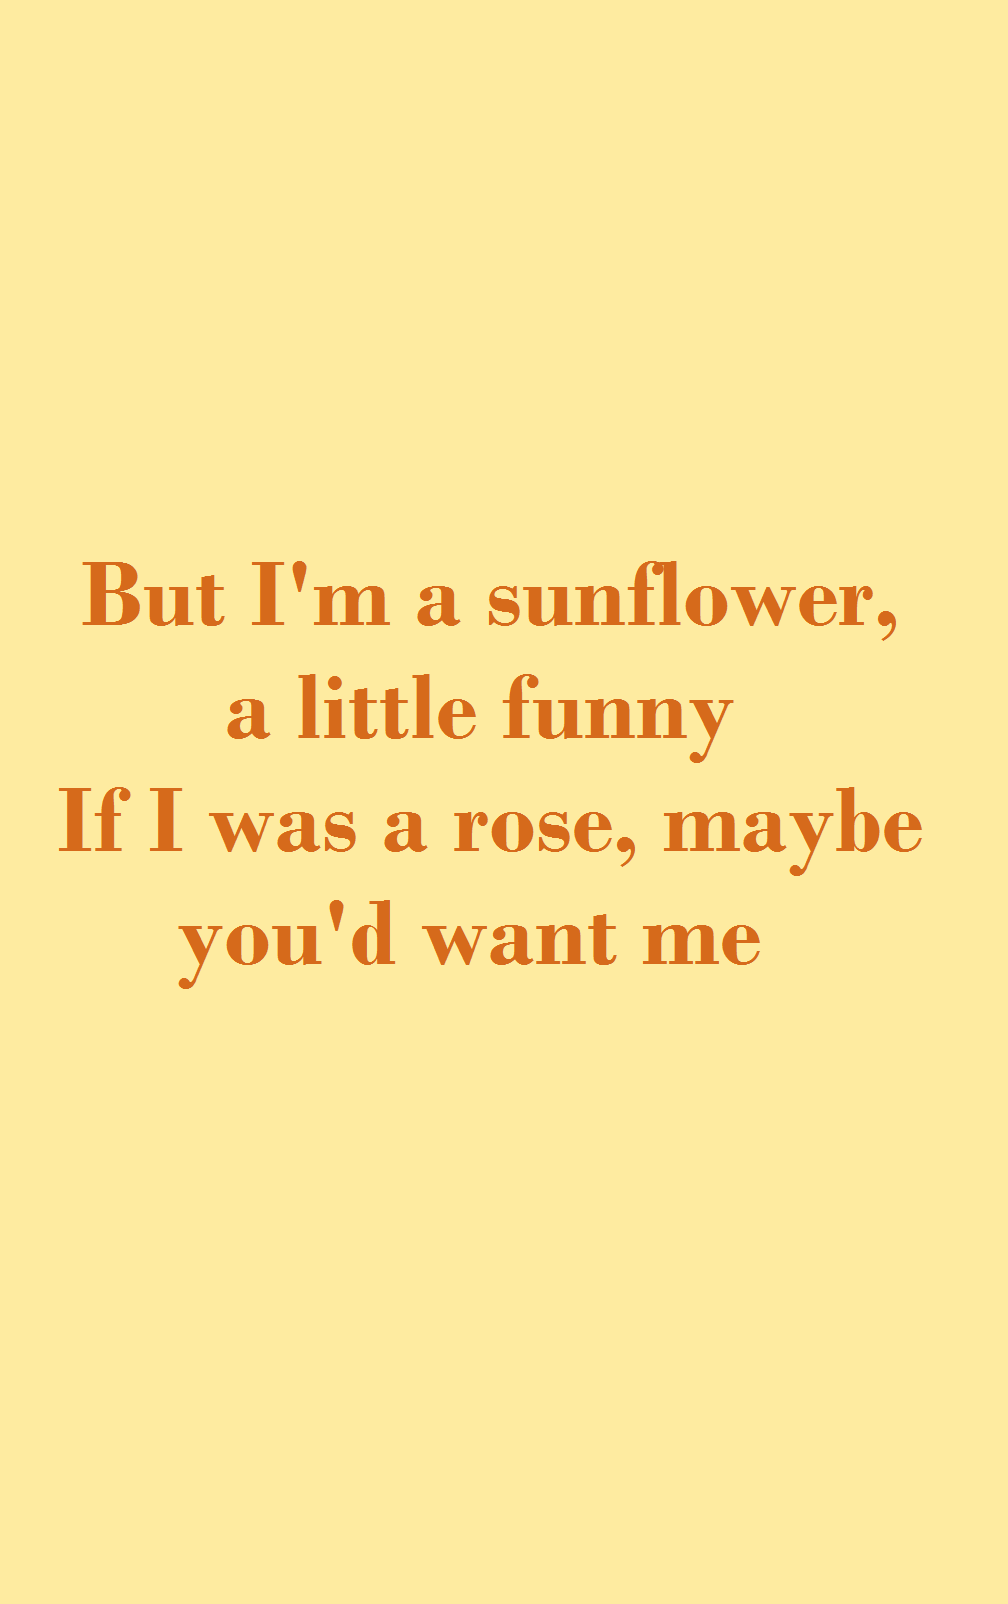 Sunflower Song Lyrics From The Movie Sierra Burgess Is A Loser Song Lyrics Wallpaper Loser Quotes Songs Lyrics Tumblr